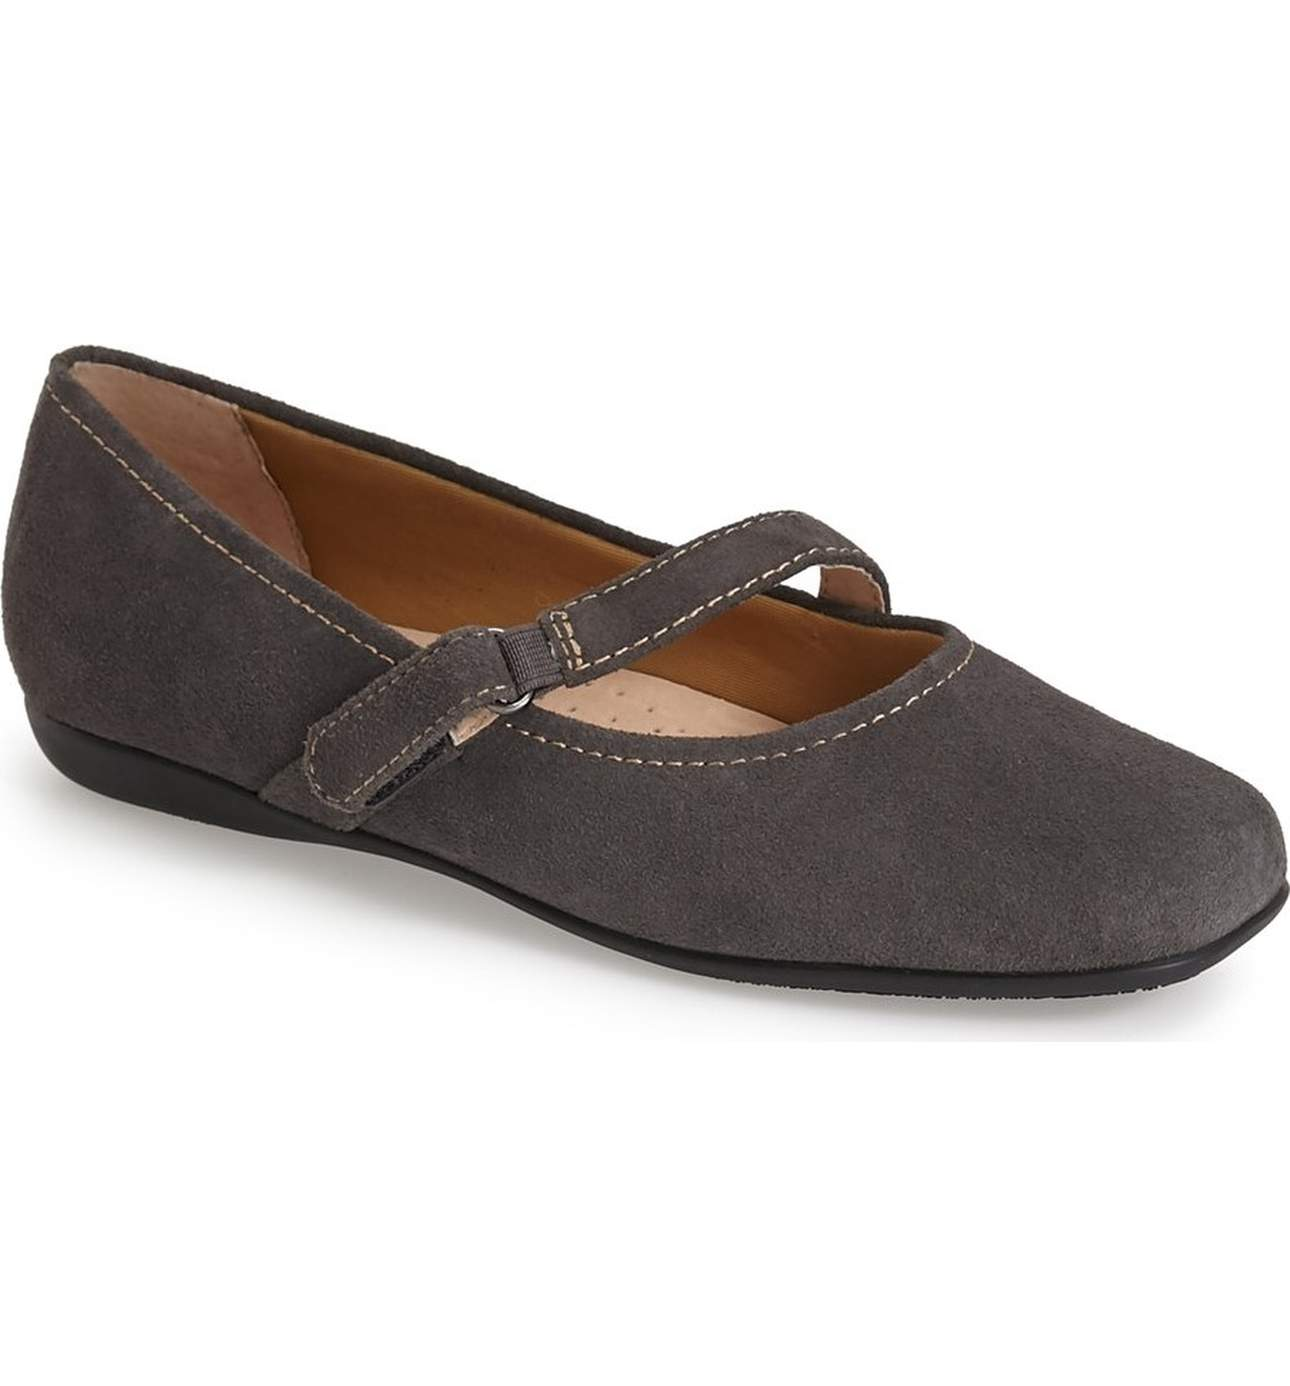 Trotters New Gray Simmy Shoes Size 6N Ballet Flats Graphite Suede SALE by Trotters